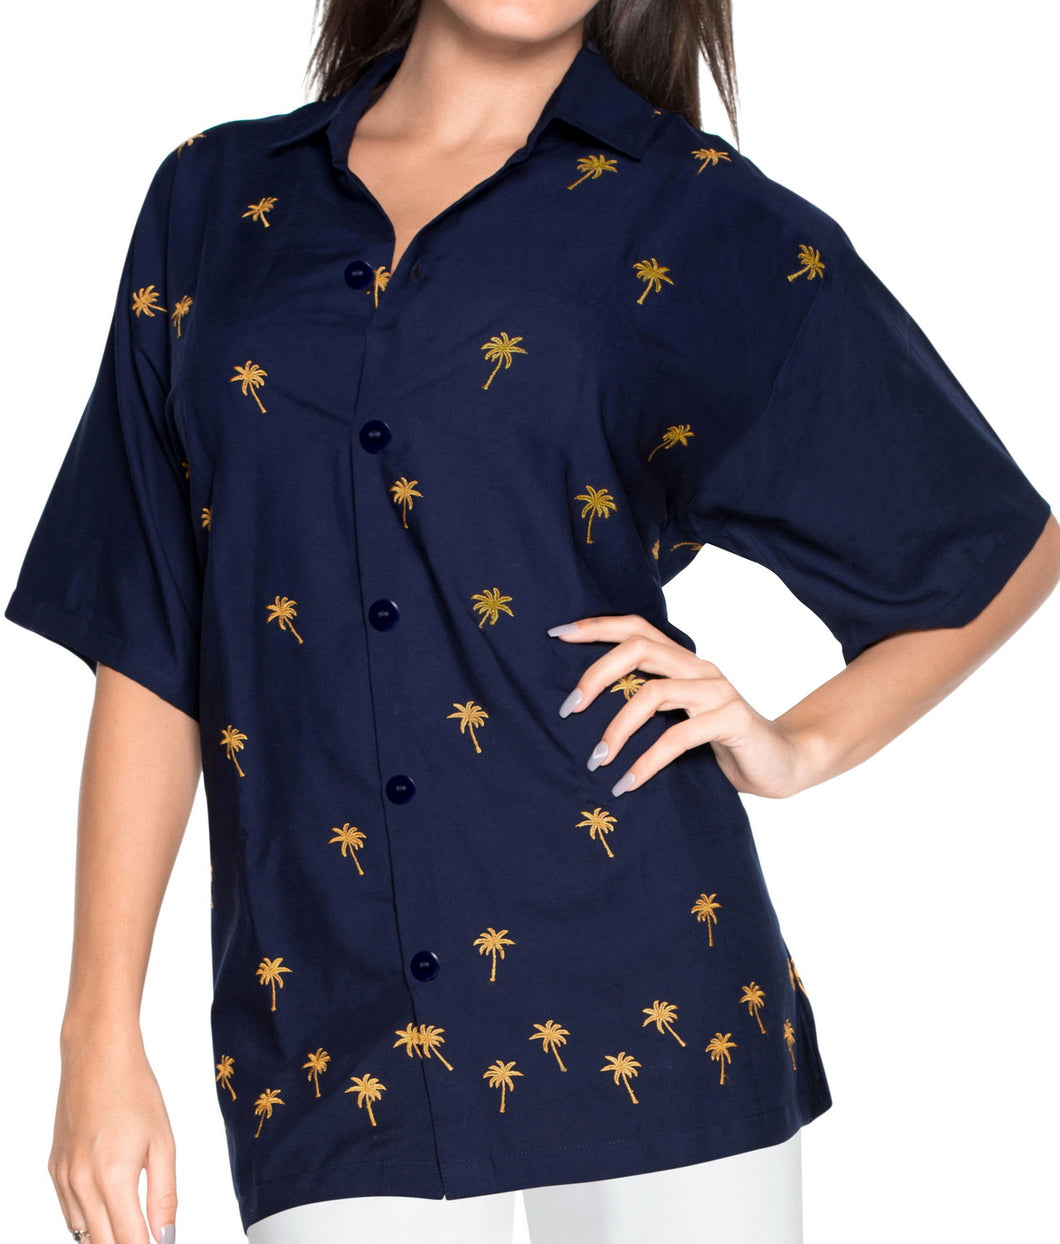 la-leela-womens-beach-casual-hawaiian-blouse-short-sleeve-button-down-shirt-navy-blue-aloha